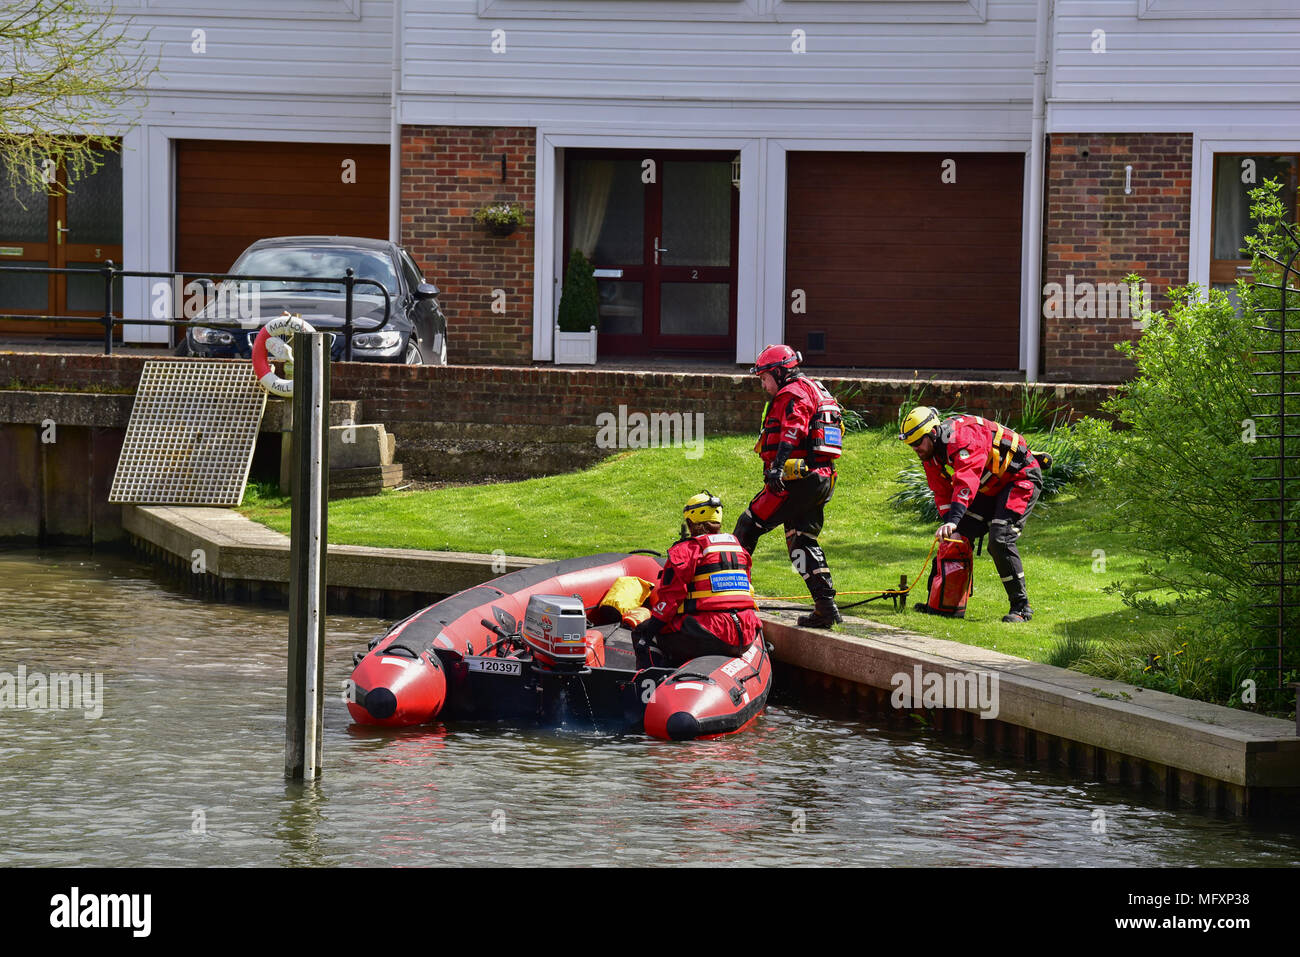 Marlow, United Kingdom. 26 April 2018. Police and Search & Rescue teams search along the River Thames for missing woman Ruth Smith Credit: Peter Manning/Alamy Live News - Stock Image